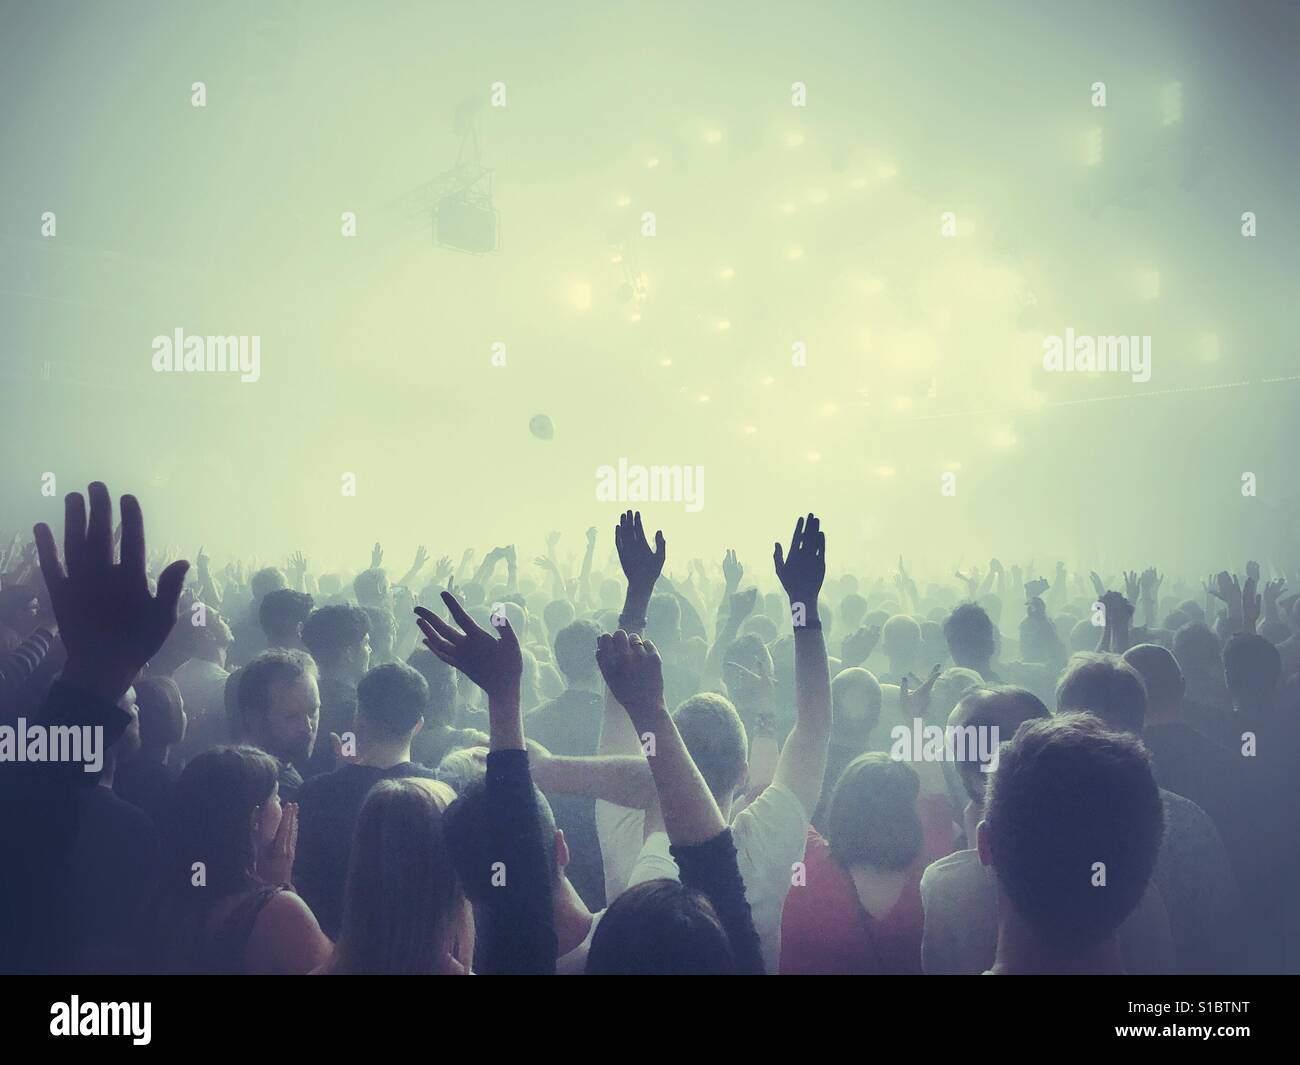 A crowd at a music gig - Stock Image